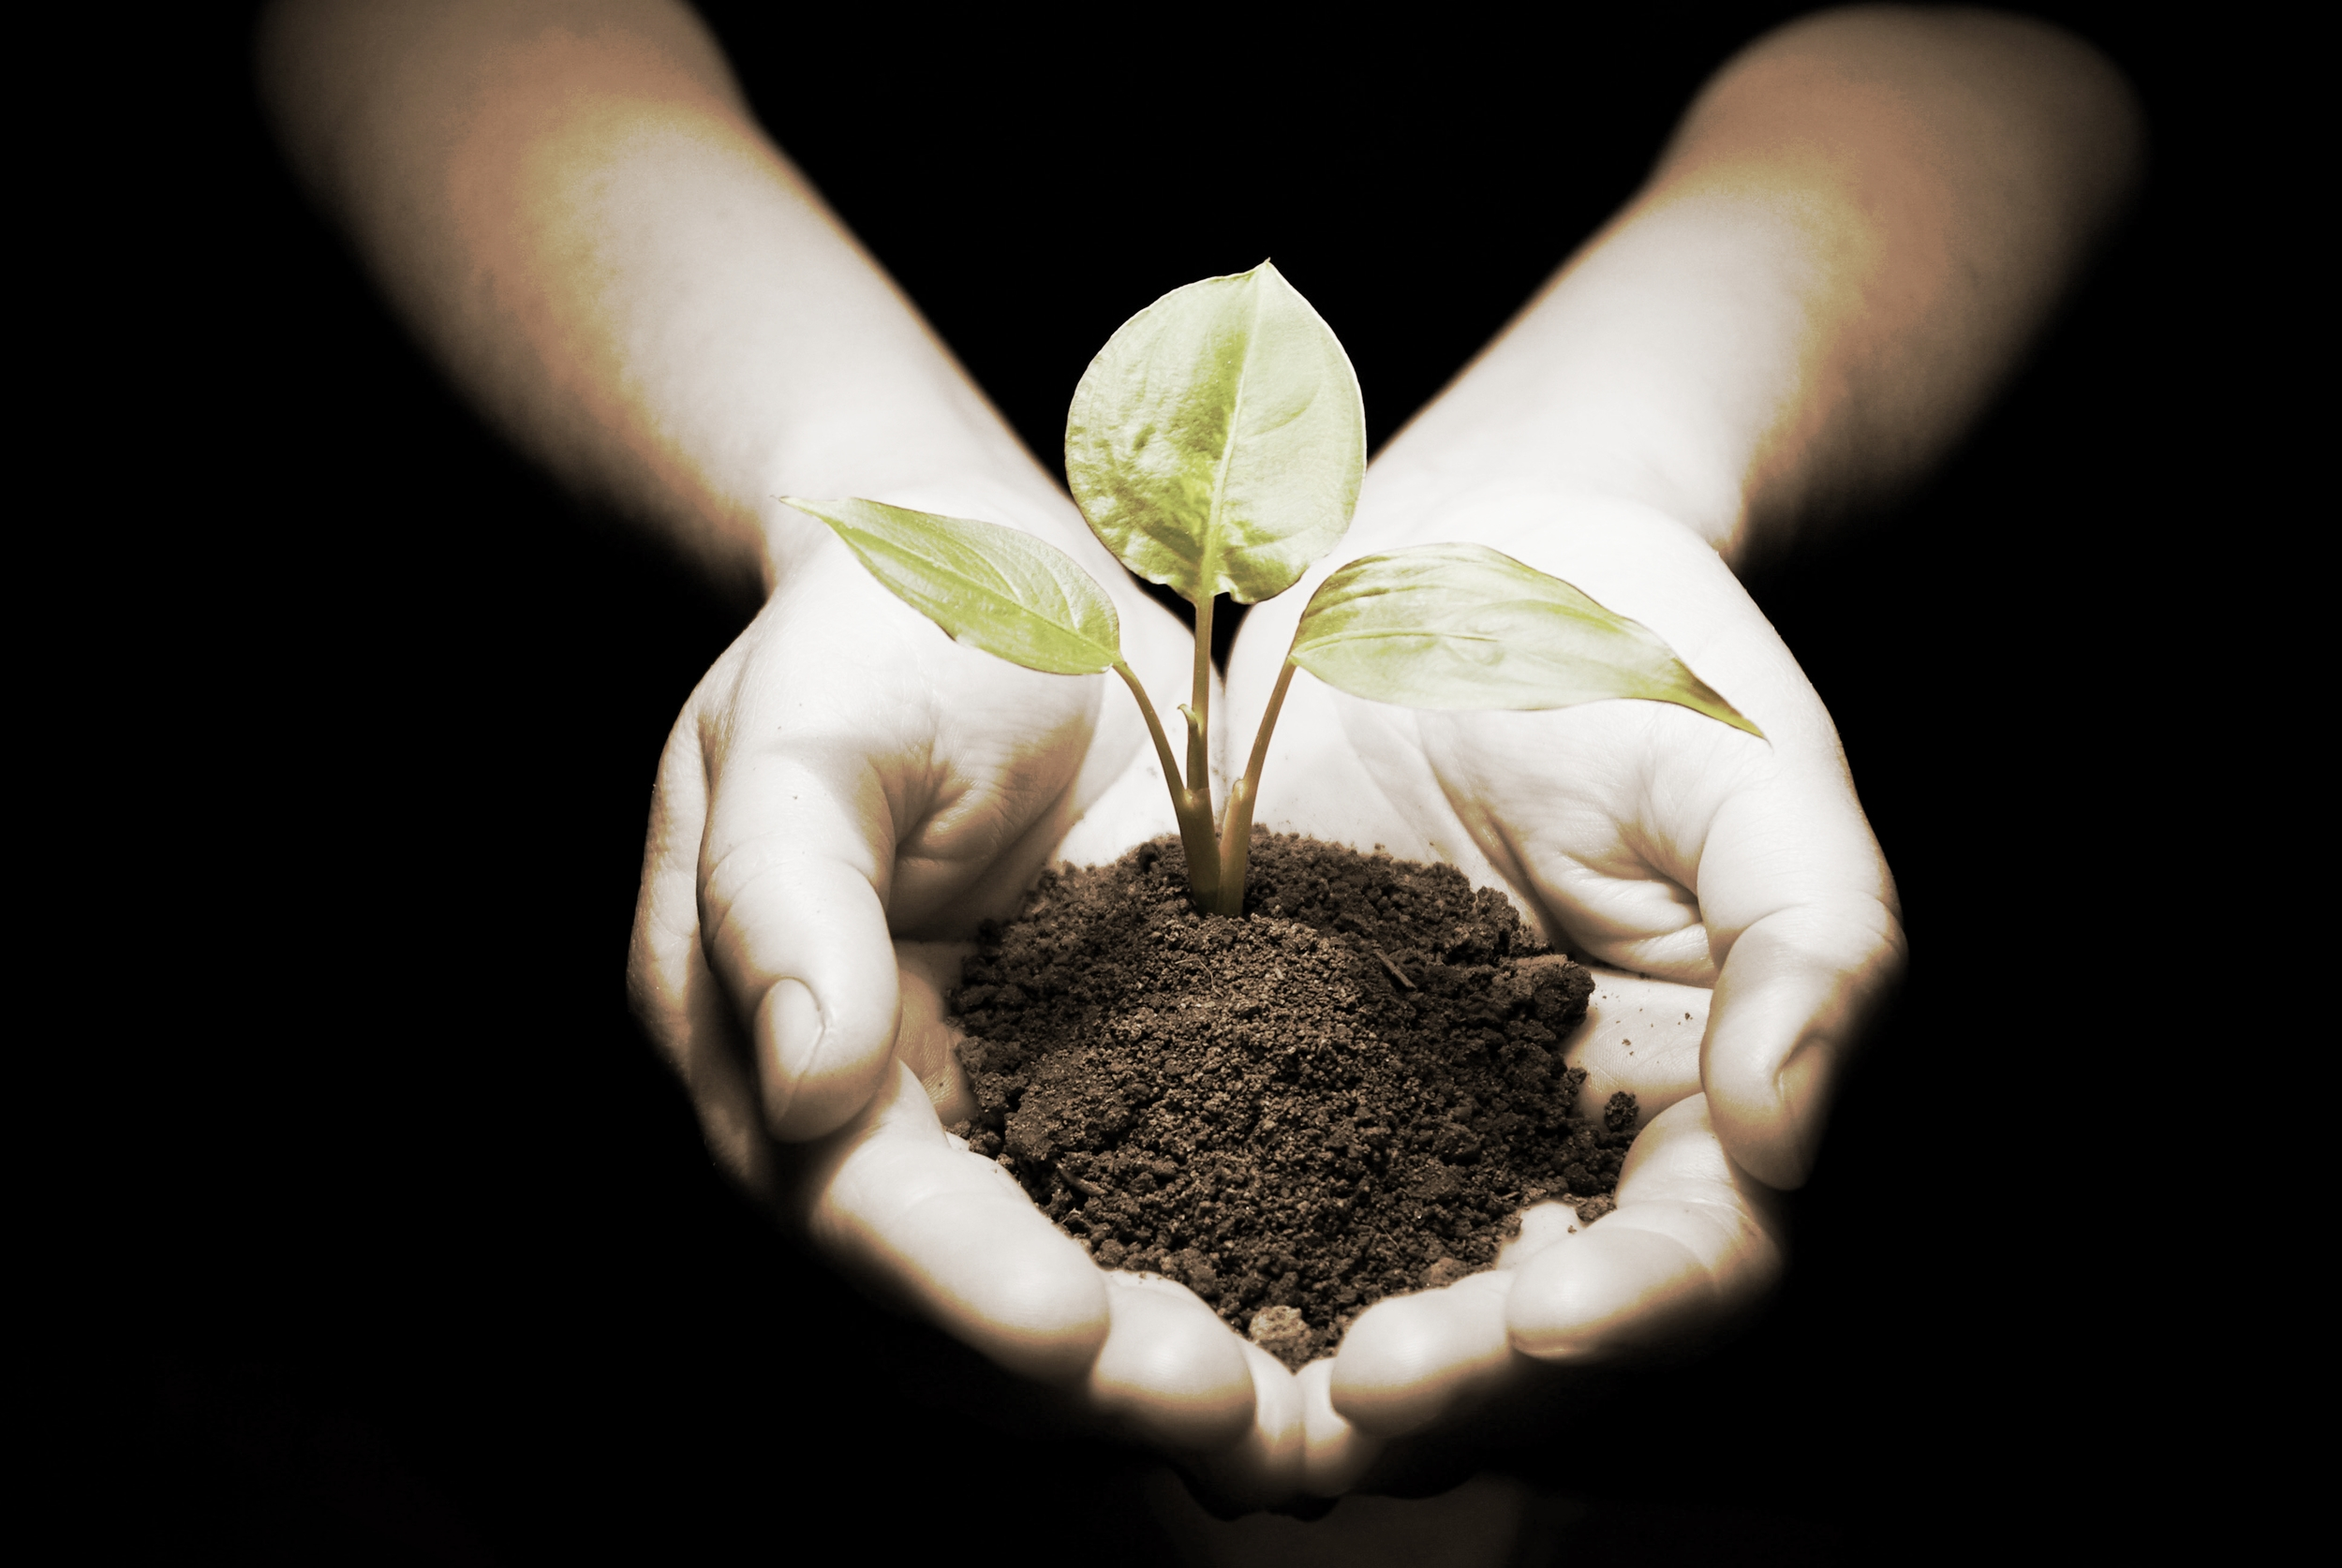 hands-with-plant-dirt4.jpg